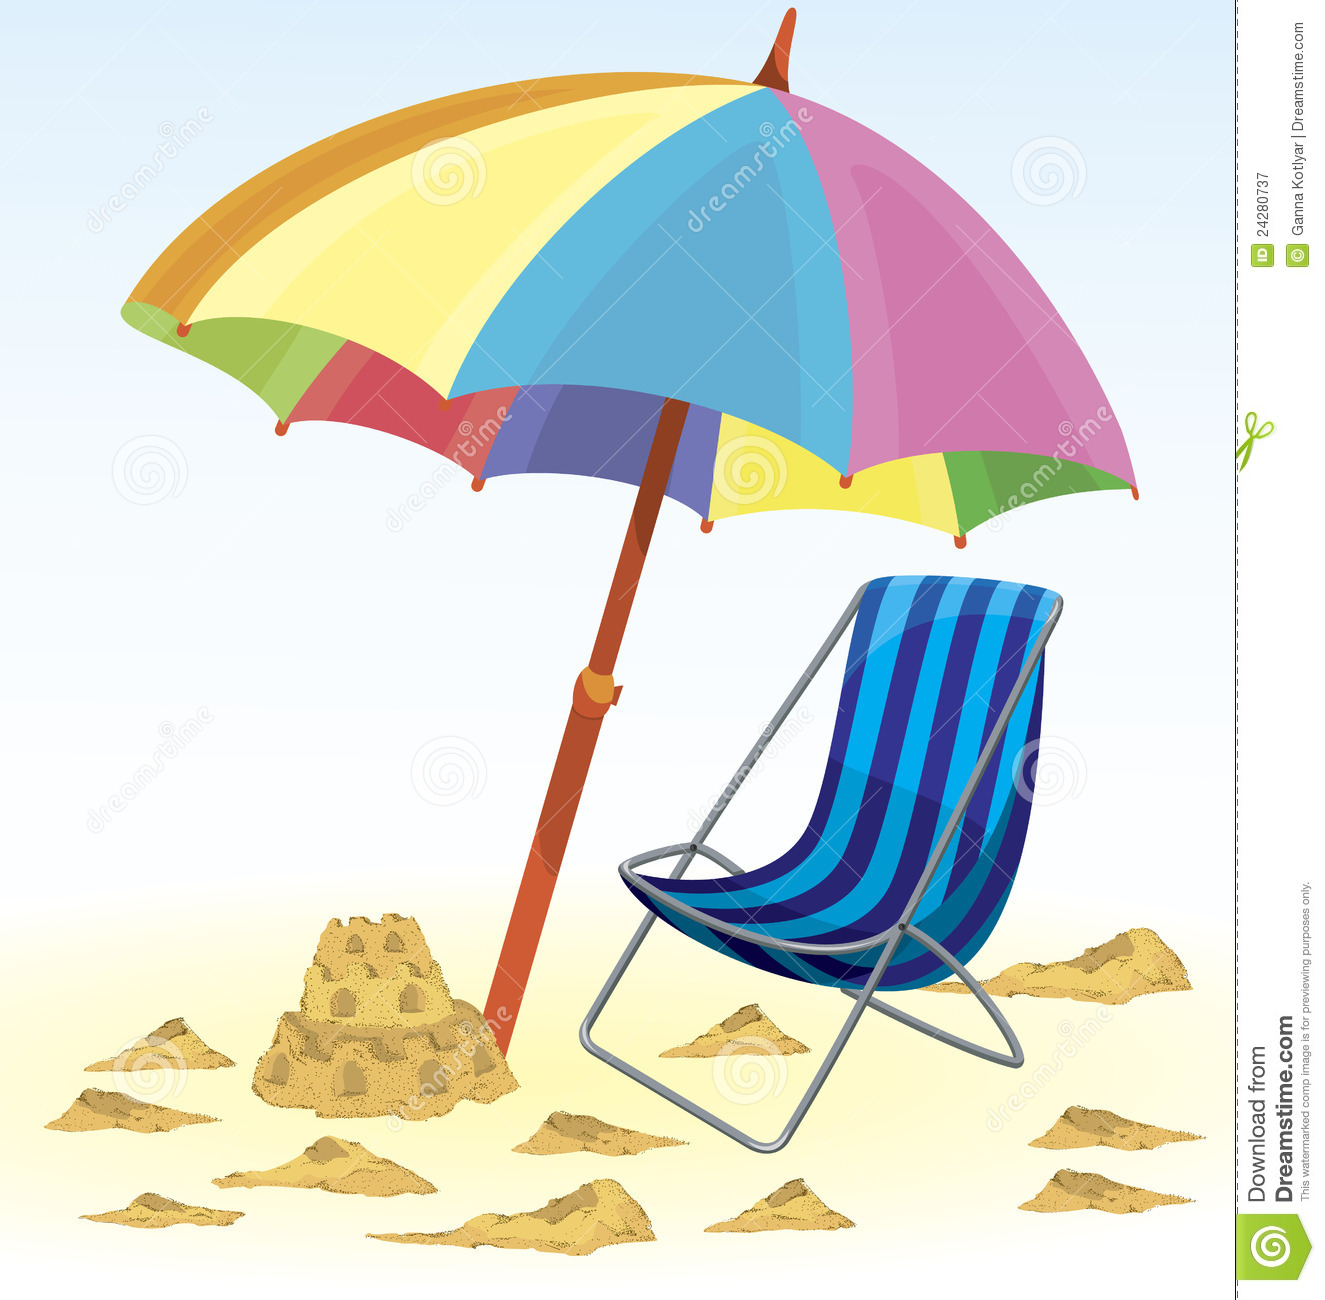 beach chair and umbrella clipart how to make covers for christmas sand resolution 1325x1300